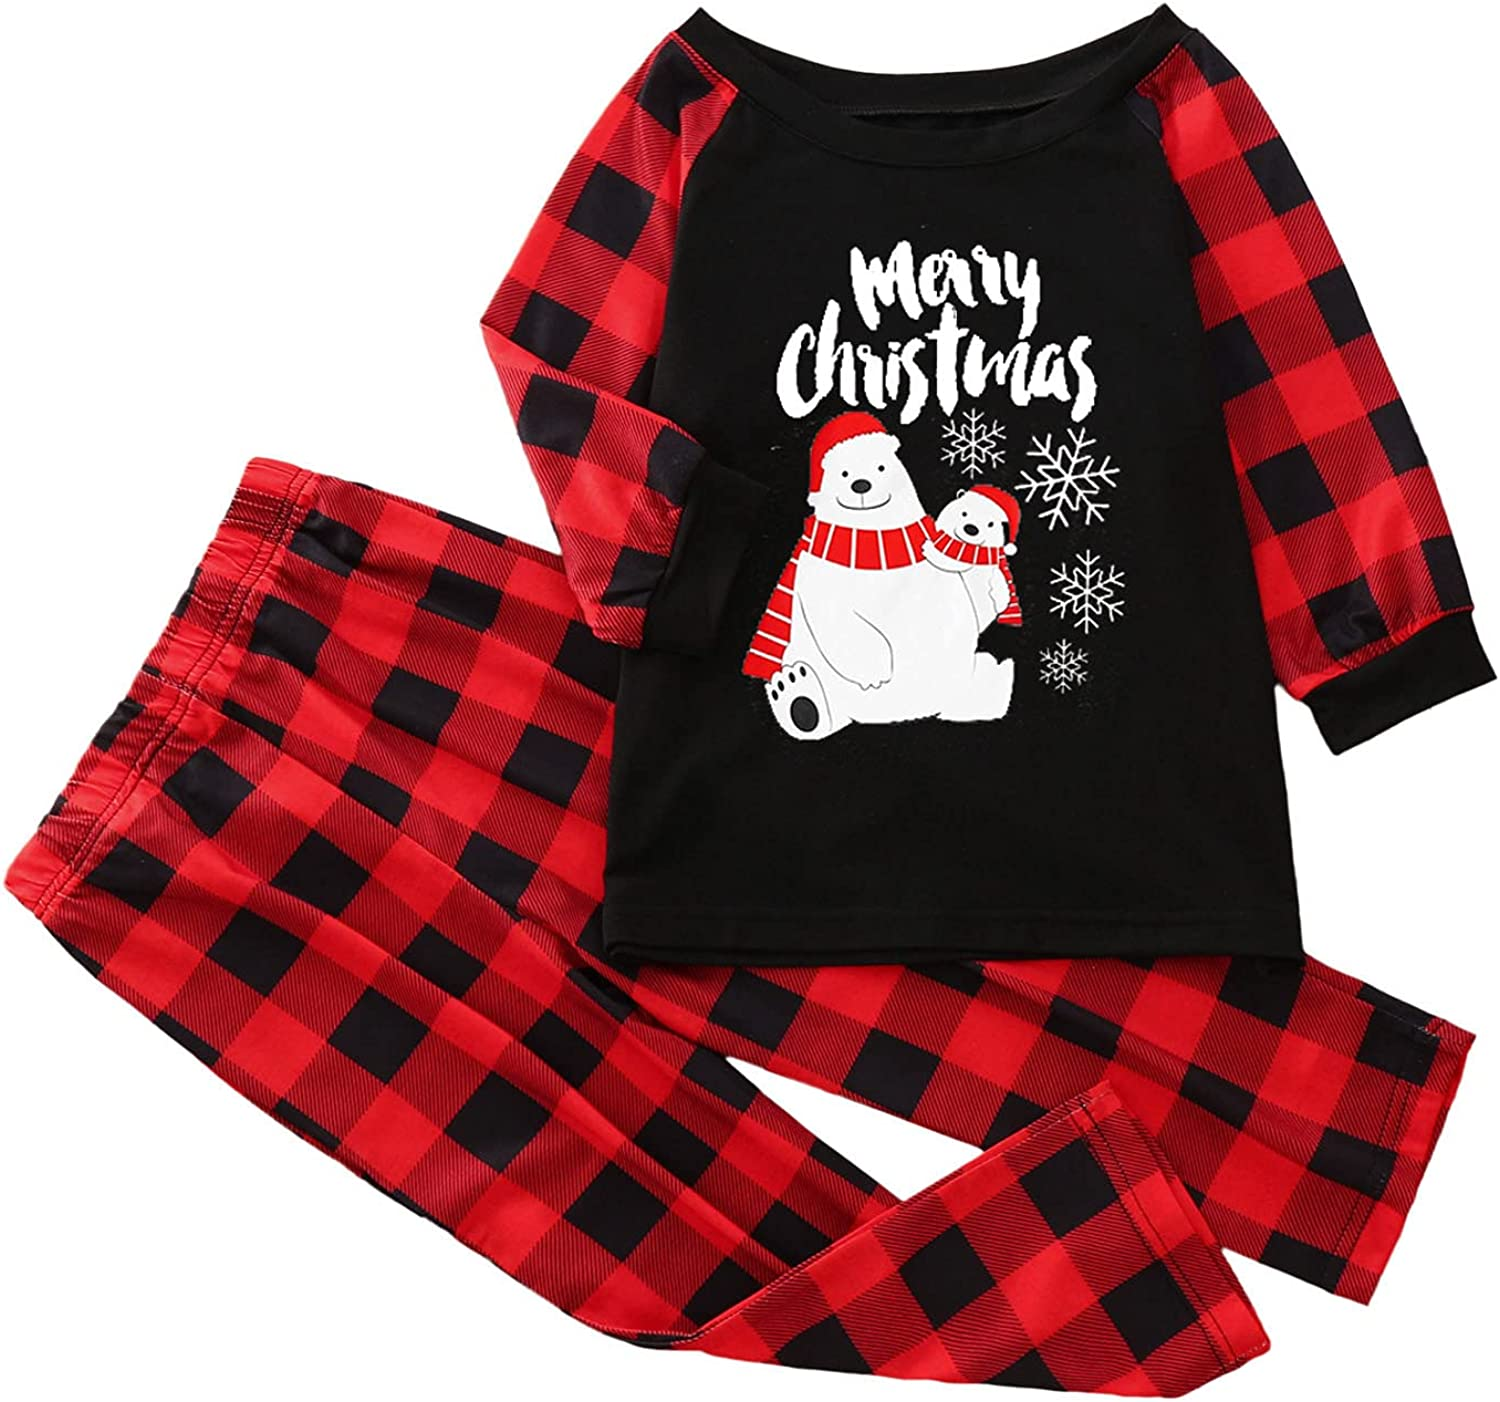 DVCB Christmas Pajamas for Family Round Neck Plaid Large Size Sleepwear Fall and Winter Cartoon Bear Print Homewear for Kids